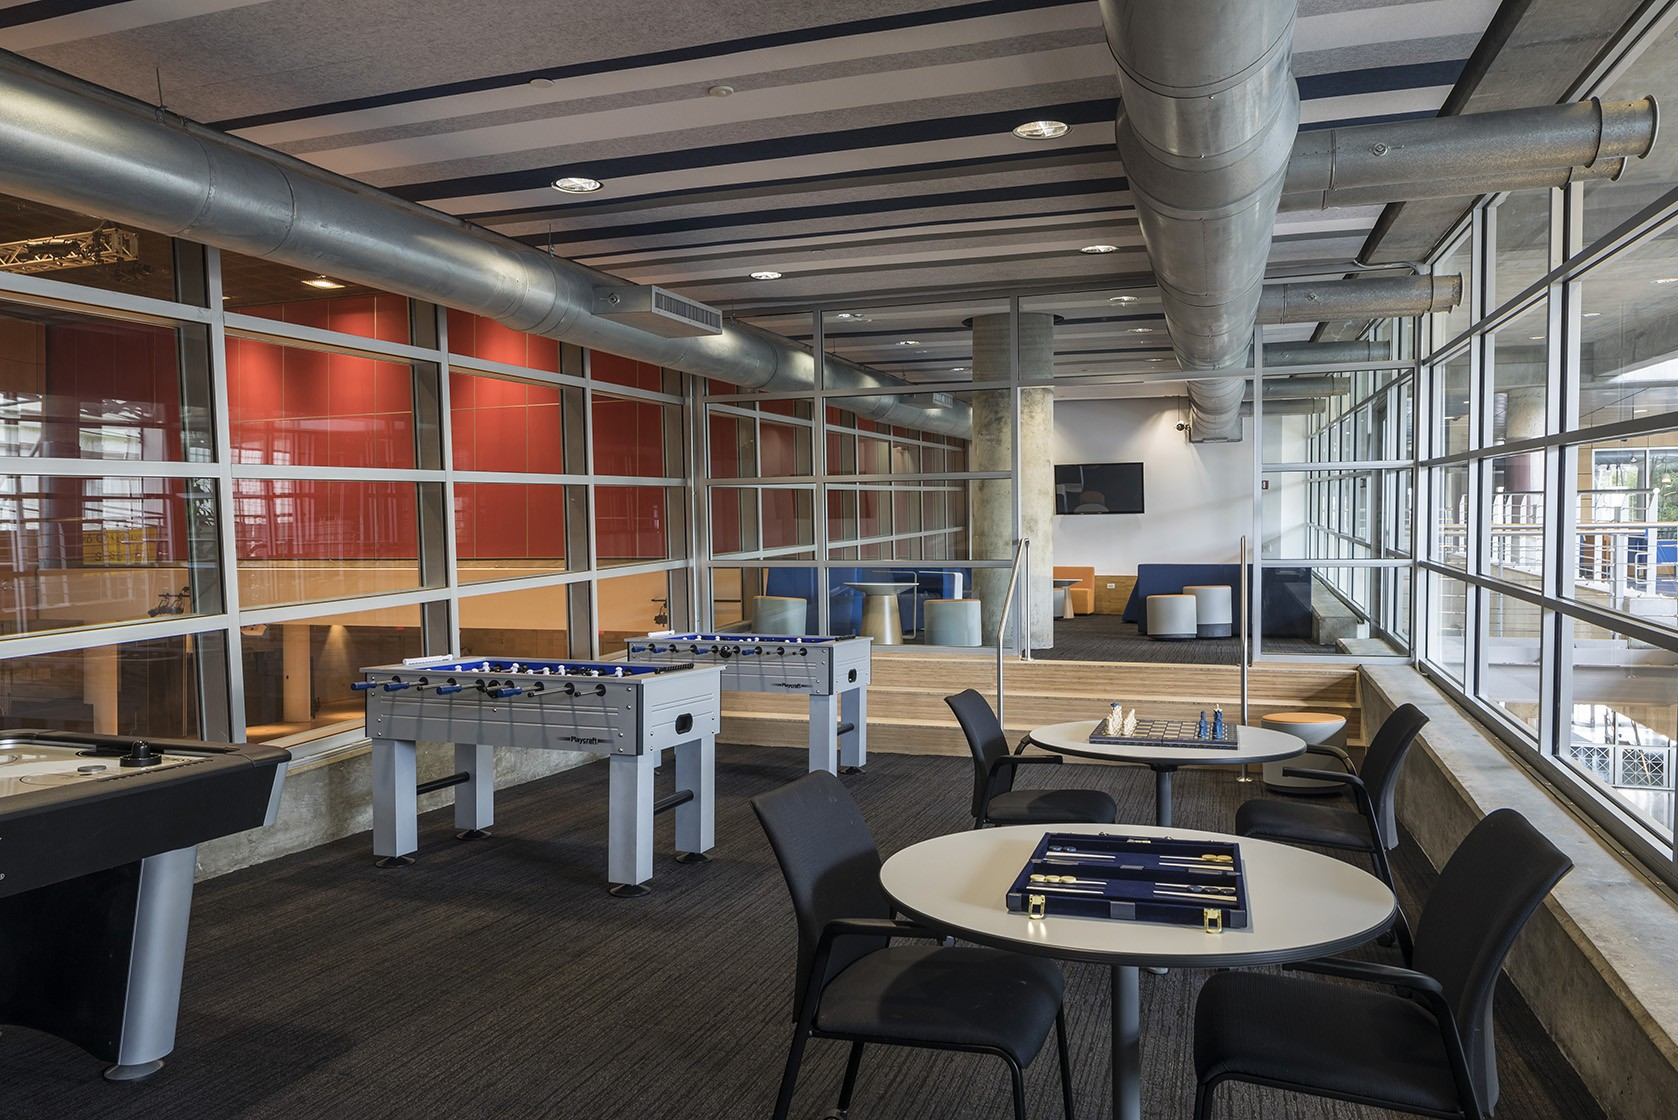 The new Lerner Hall student lounge includes a game room featuring air hockey and foosball tables plus other games like giant Jenga, giant Connect 4, chess, and Legos.  (Photo: Andrew Rugge)